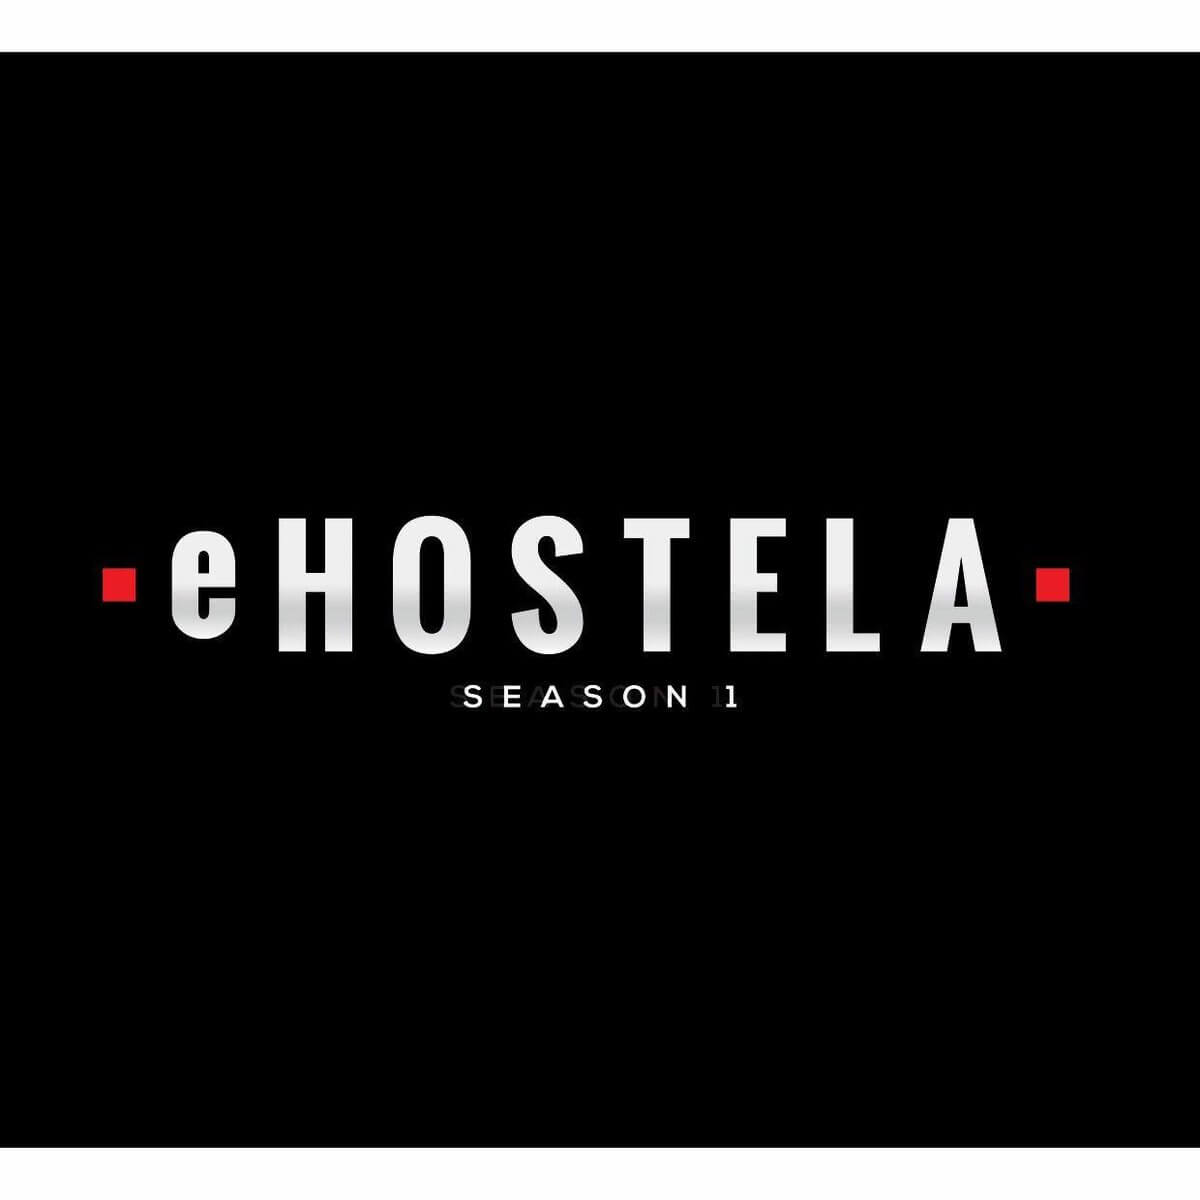 eHostela mzansi magic channel 161